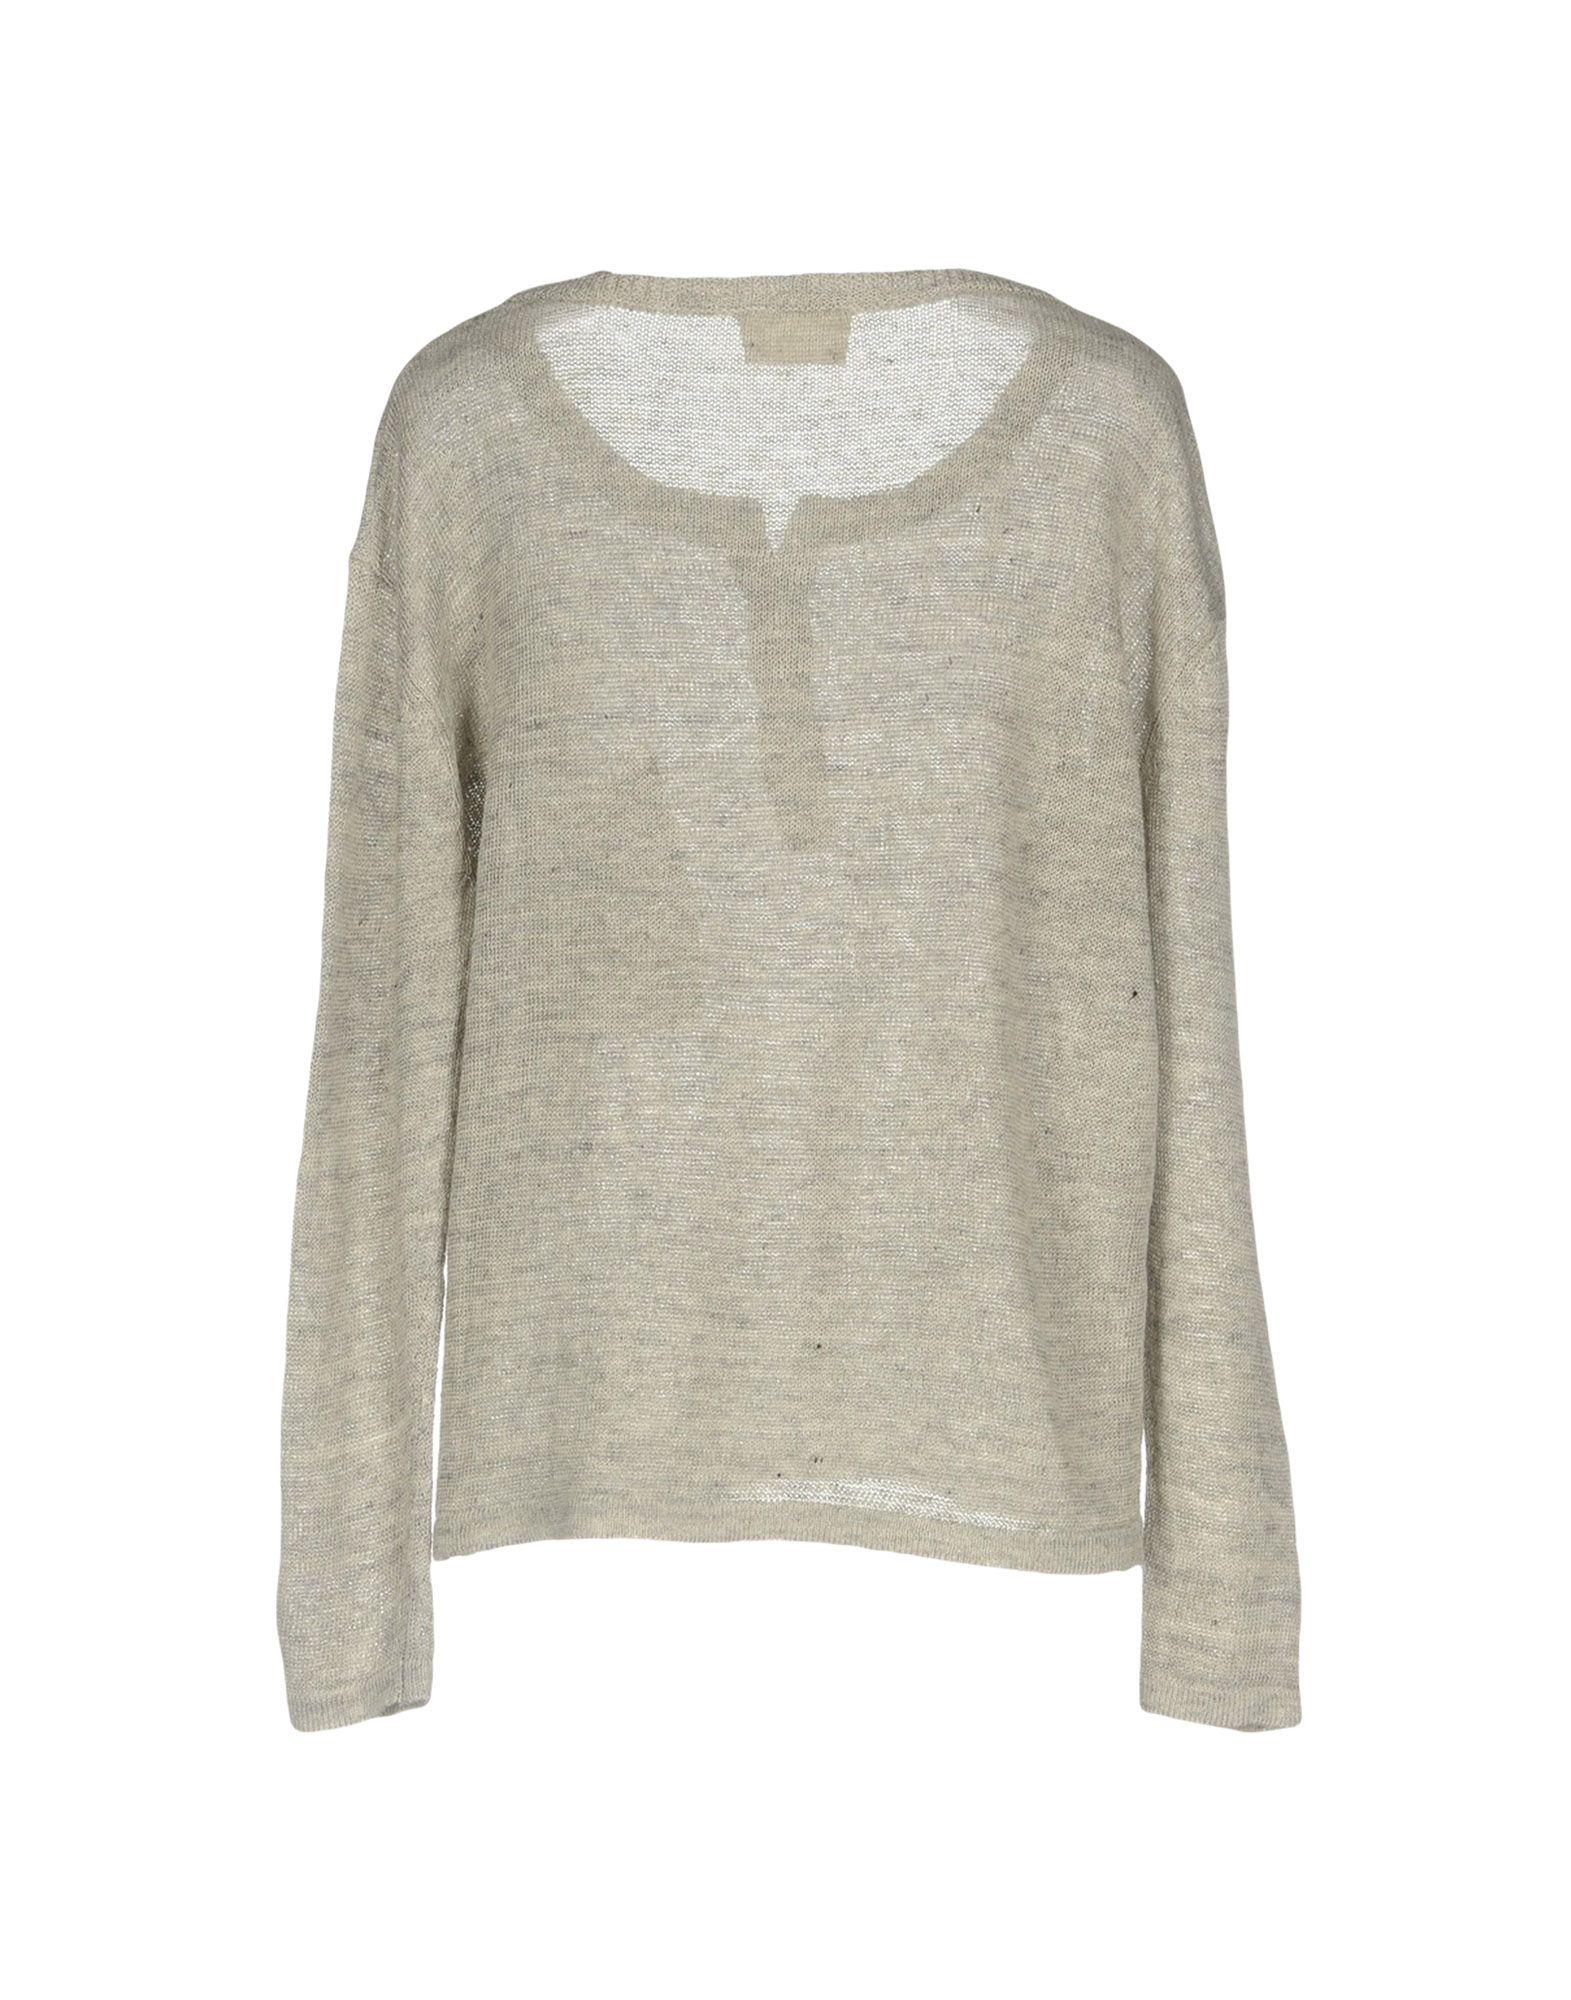 3512c0a26450 Lyst - American Vintage Sweater in Gray